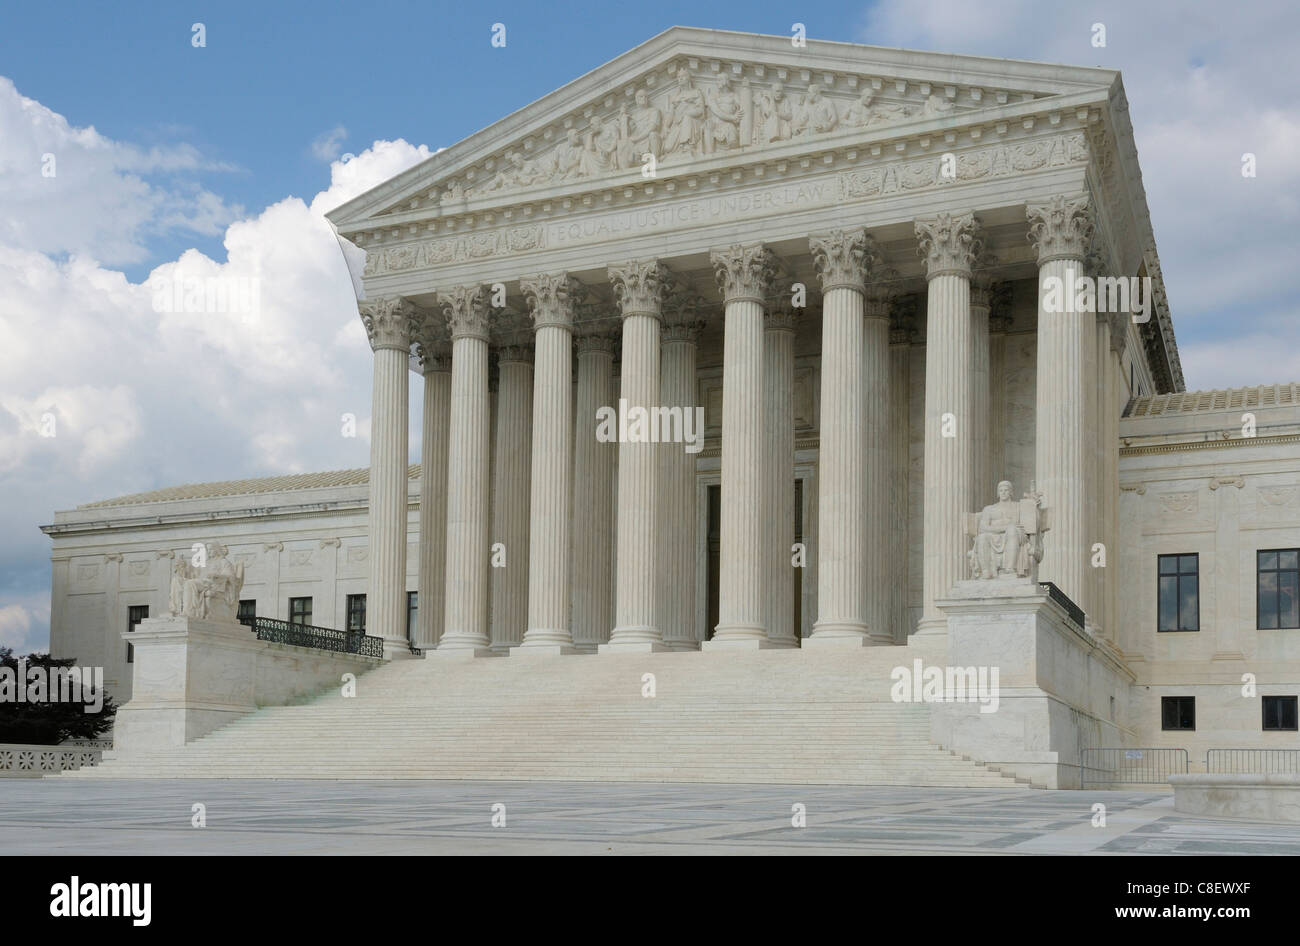 Supreme Court, Building, Washington D.C., District of Columbia, USA, United States, America, columns - Stock Image